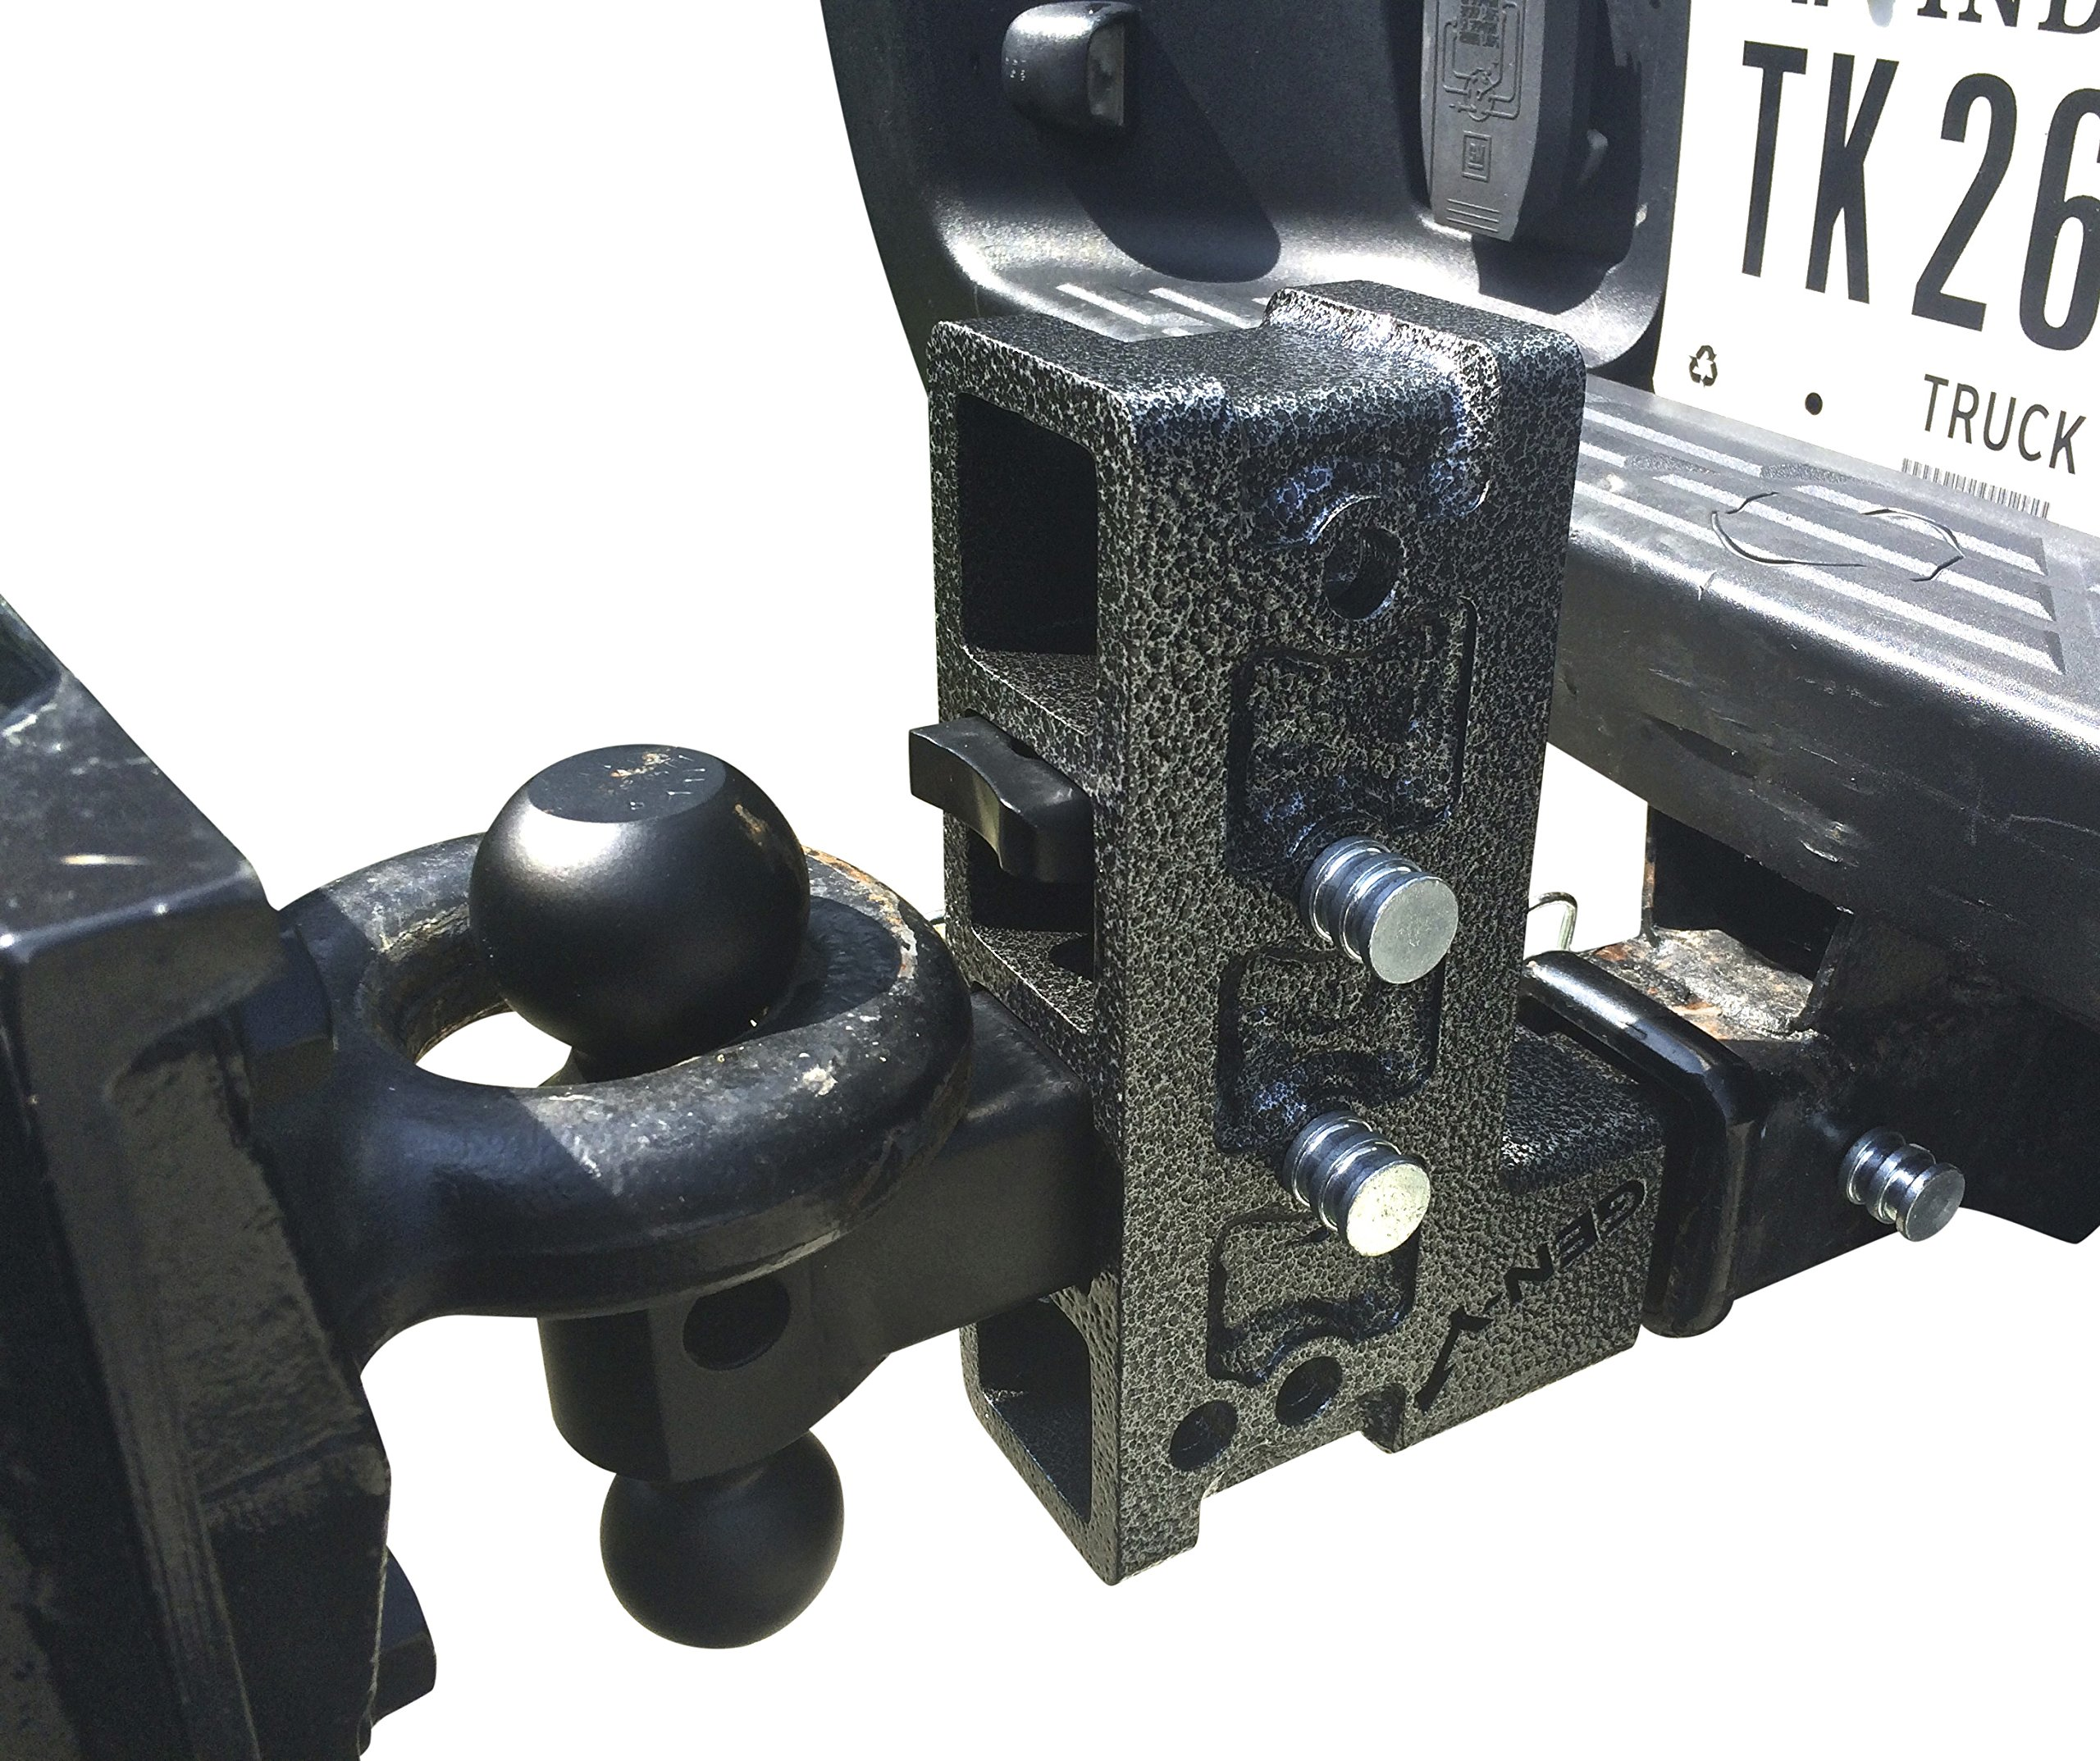 Drop Hitch by Geny 525 16,000 Lb 10'' Drop Raise Hitch 2'' Receiver Hitch, Dual-ball Pintle Combo Hitch, Black, 16 x 12 x 4 inches by GEN-Y Hitch